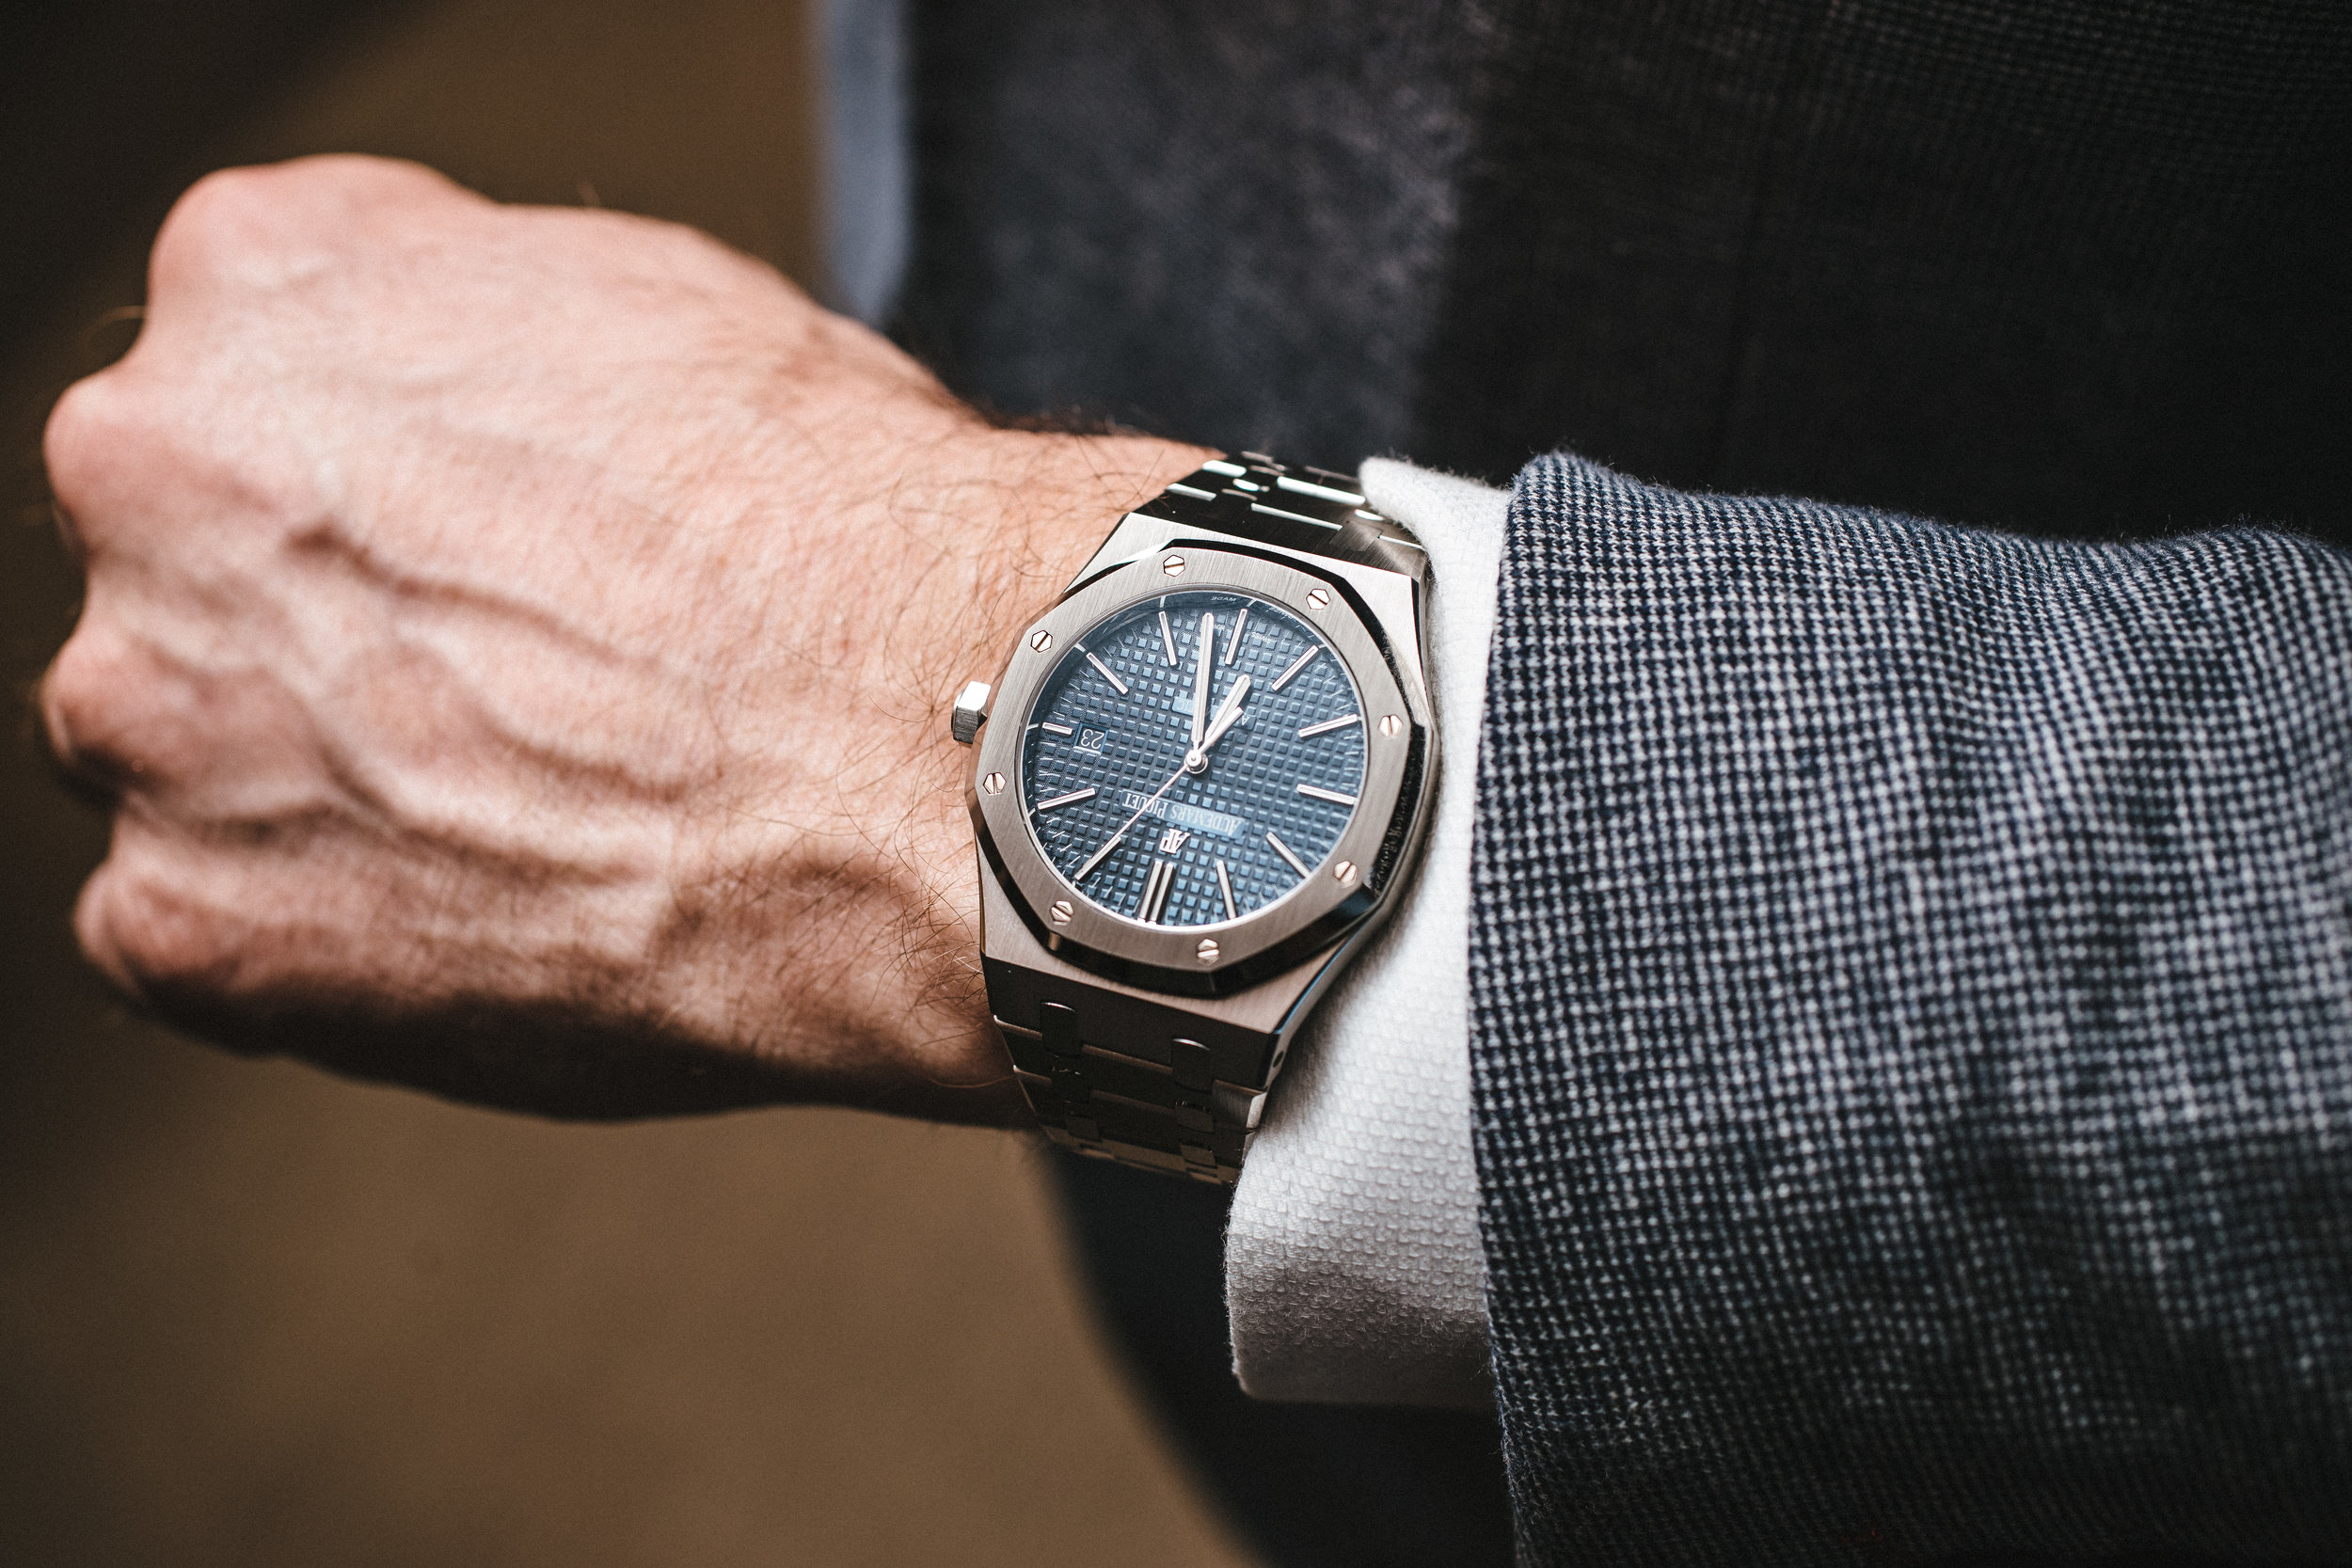 WatchesofInstagram knows how to pair a watch and blazer